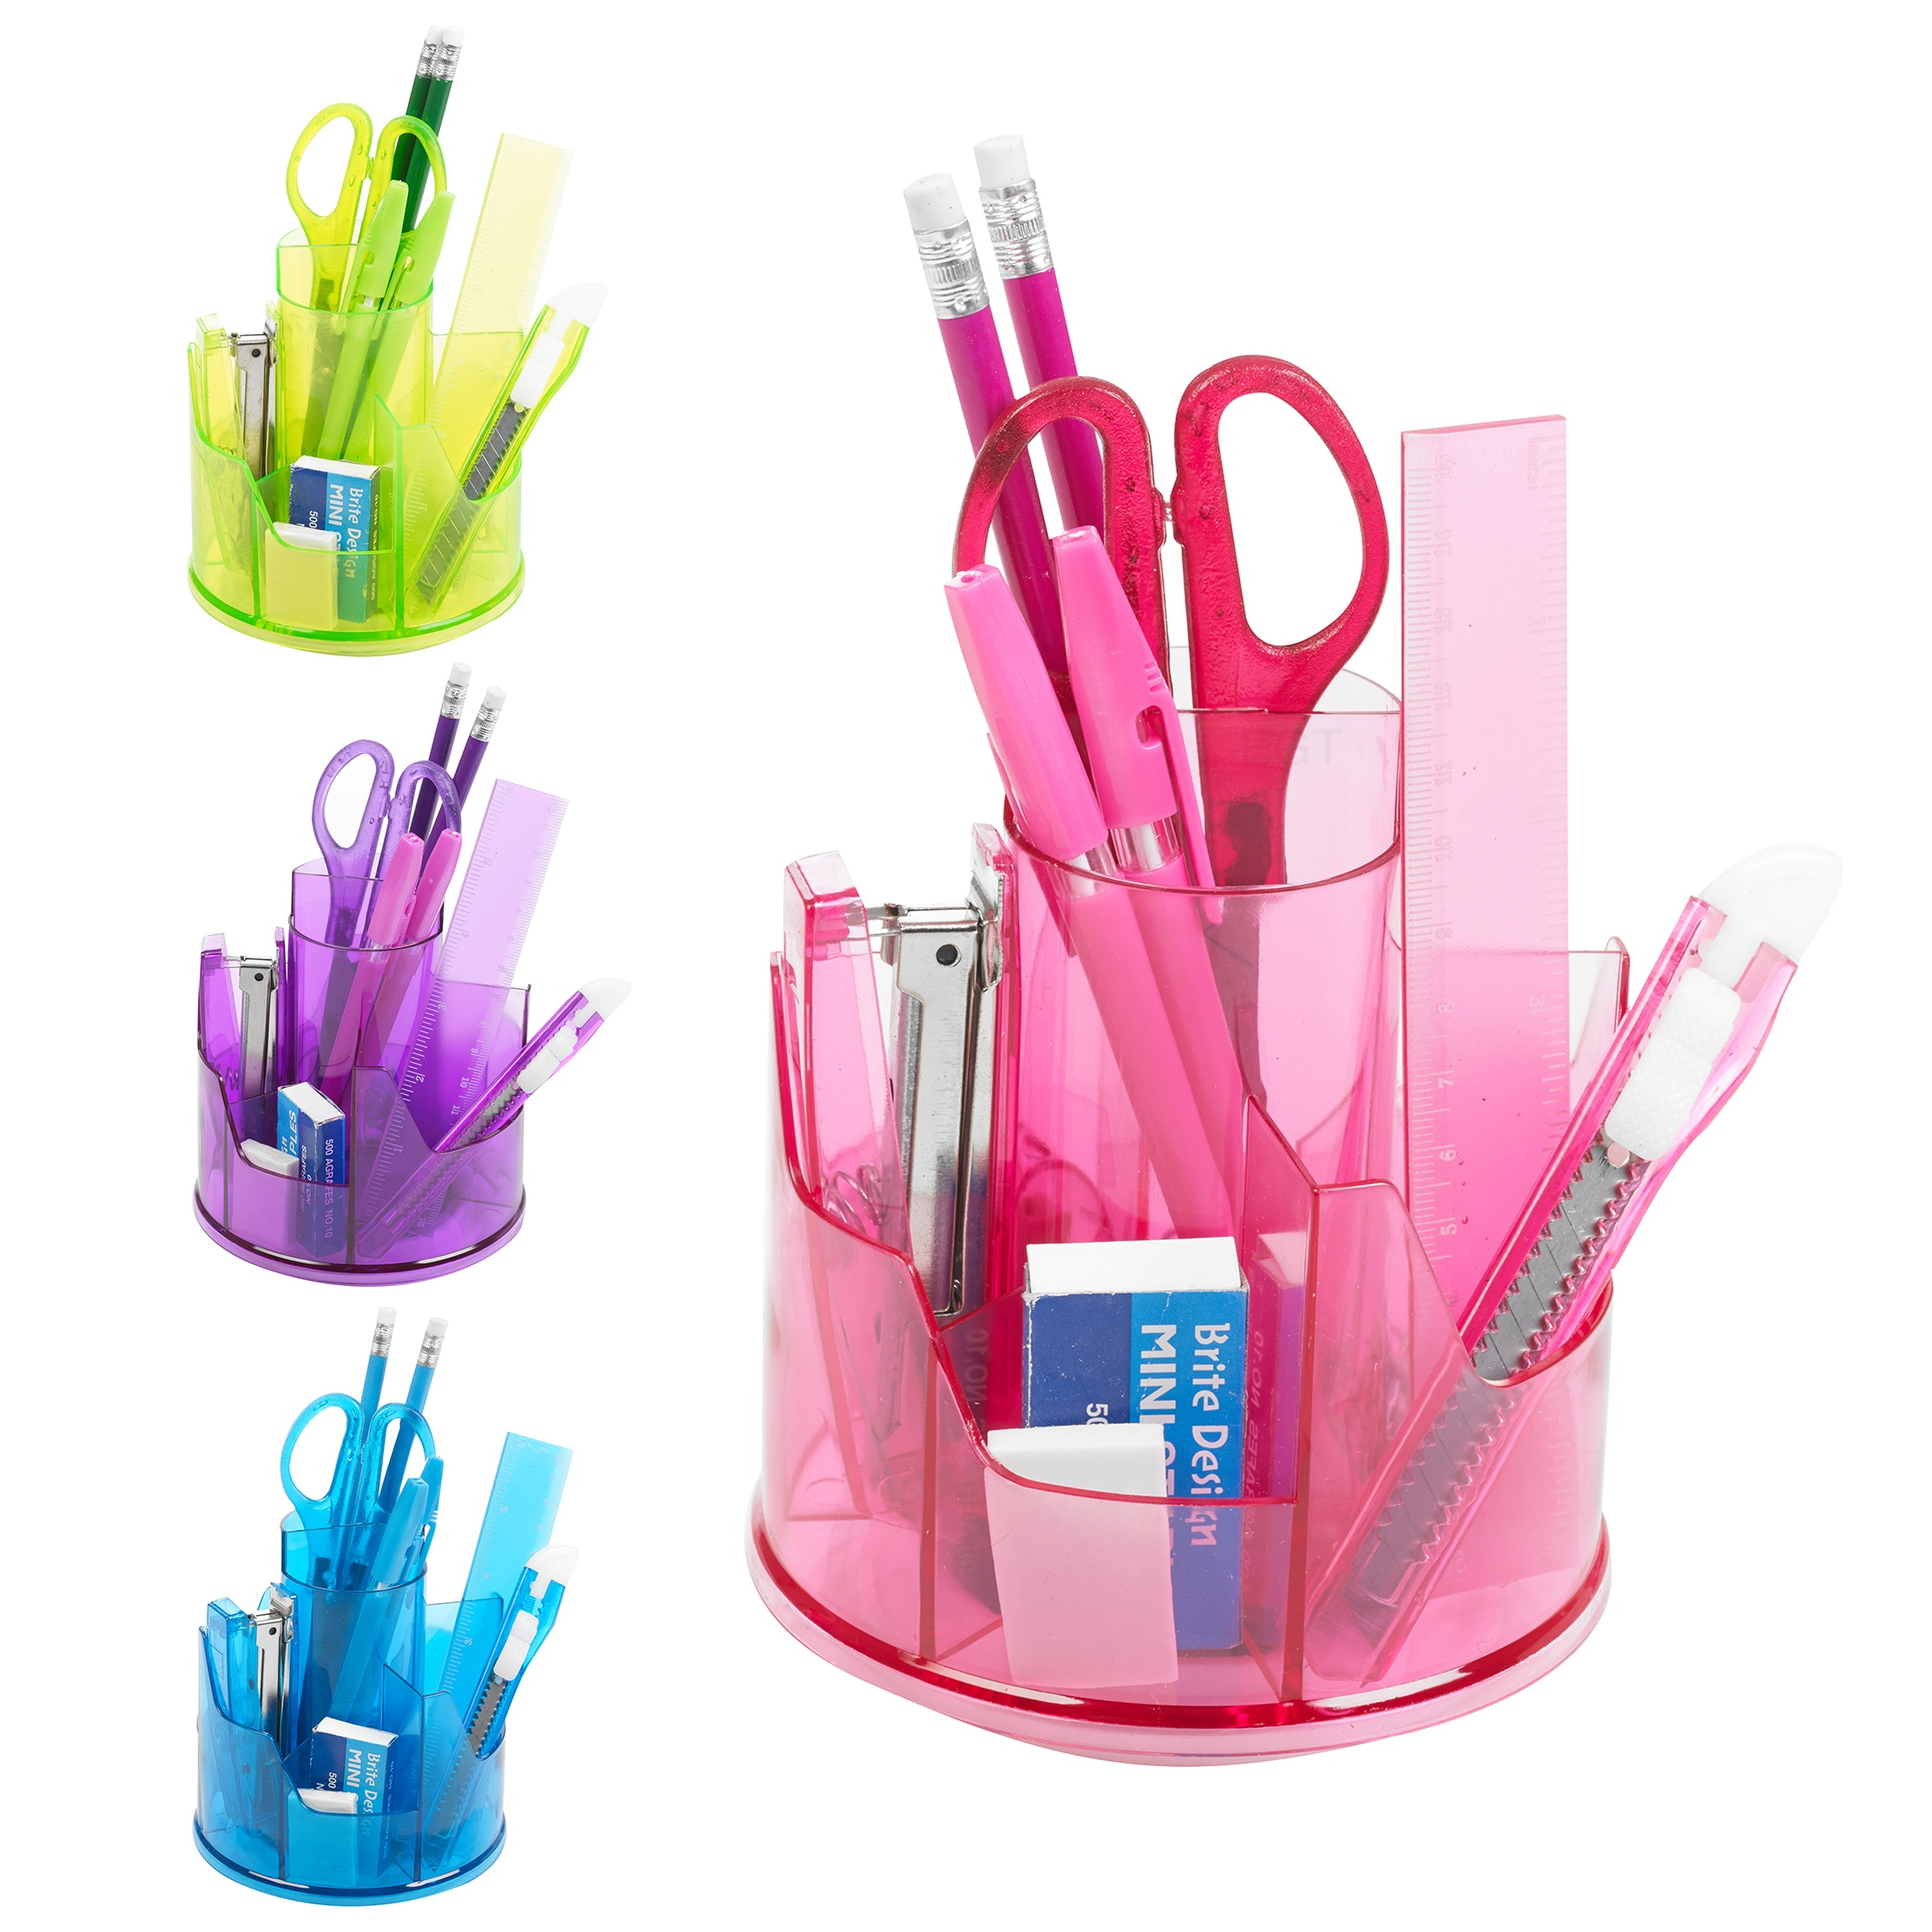 13pc office stationery organiser set rotating desk tidy pen holder accessory pot ebay - Desk stationery organiser ...